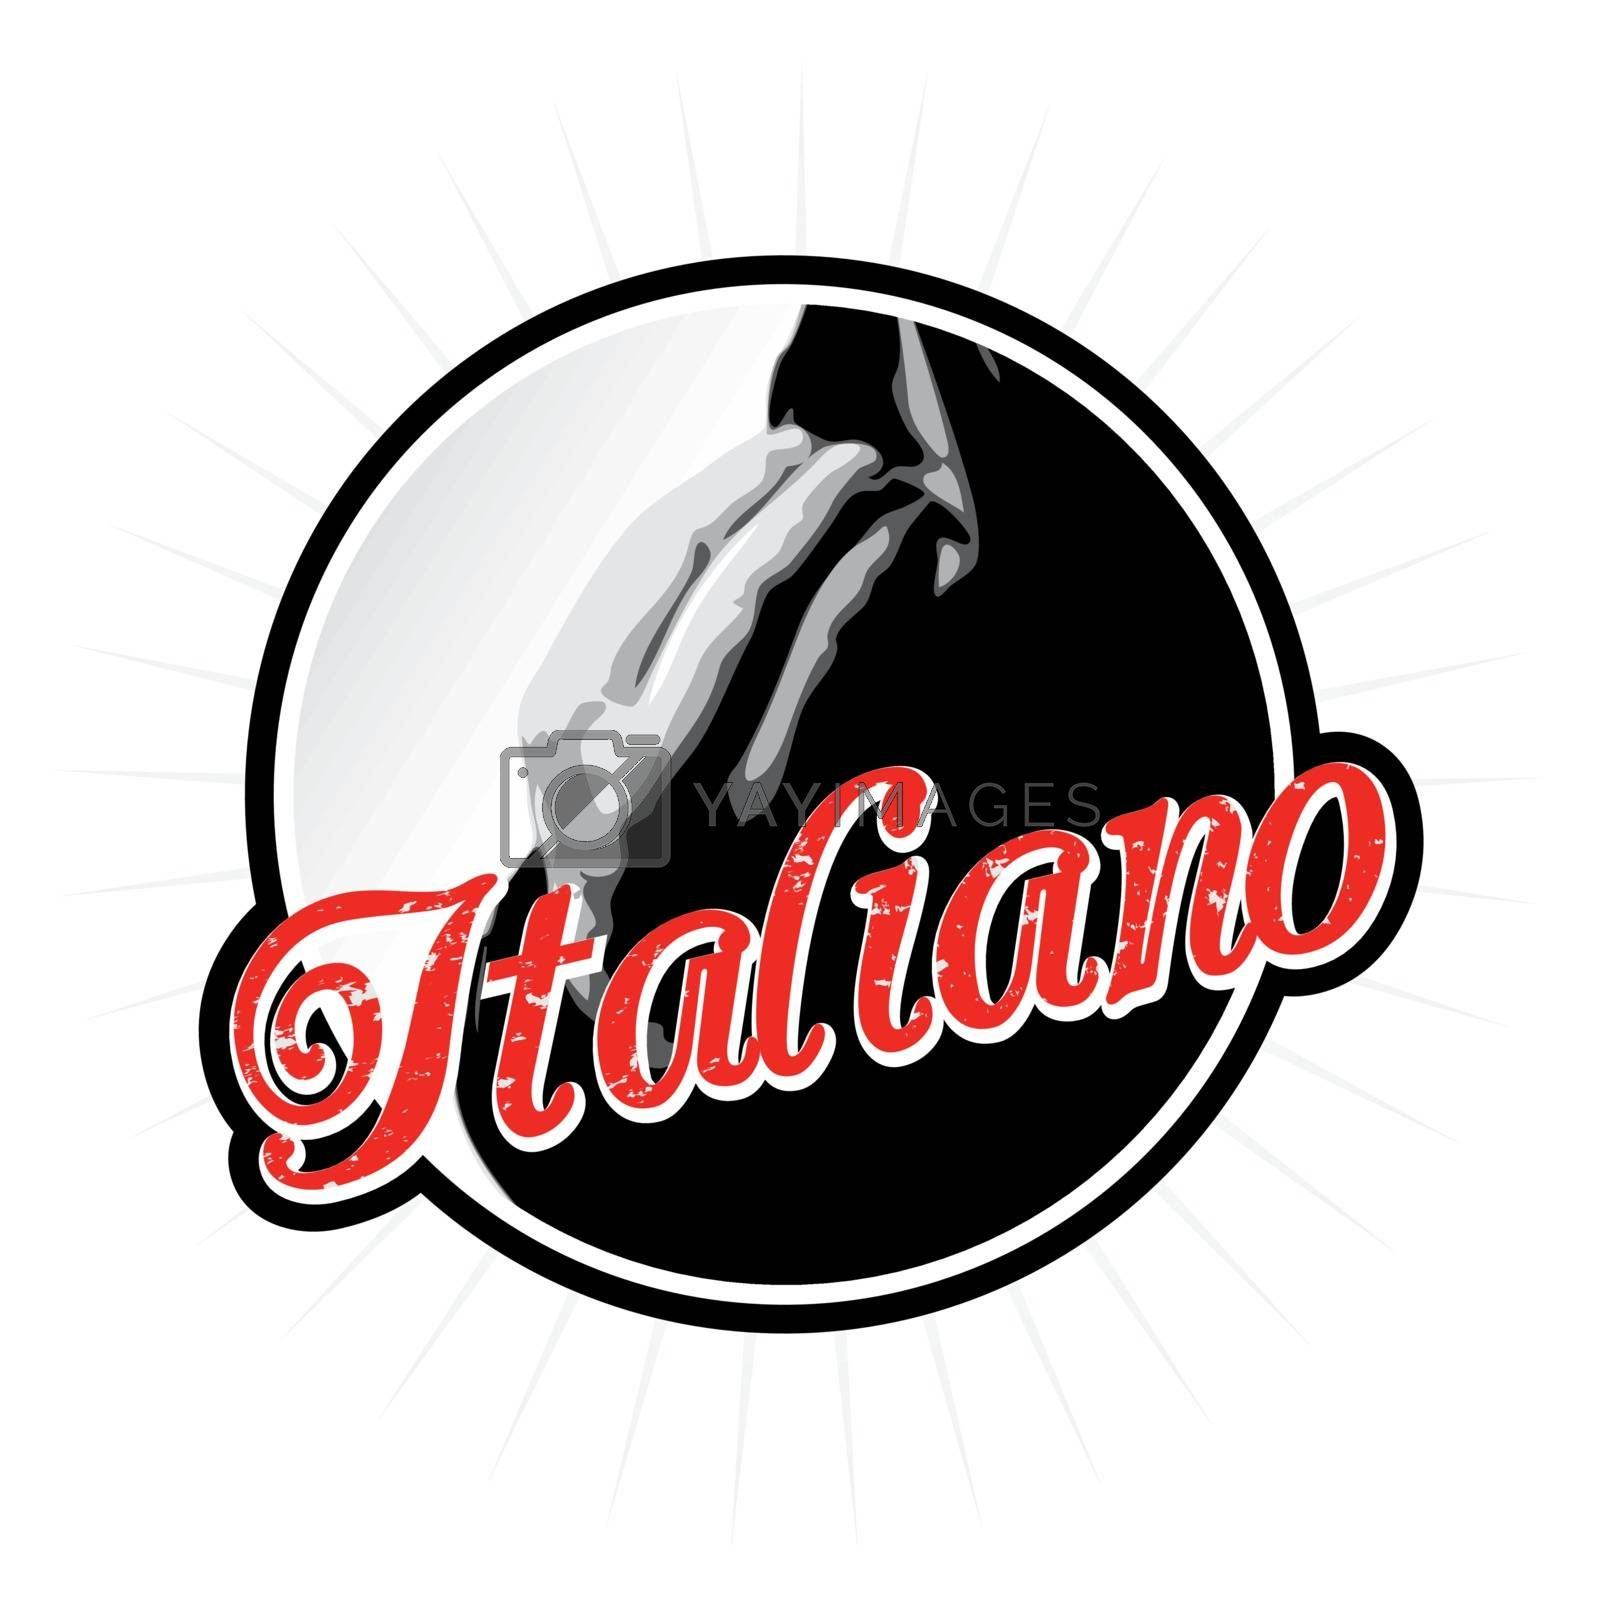 Italians talk with their hands as depicted in this Italian label or icon design.